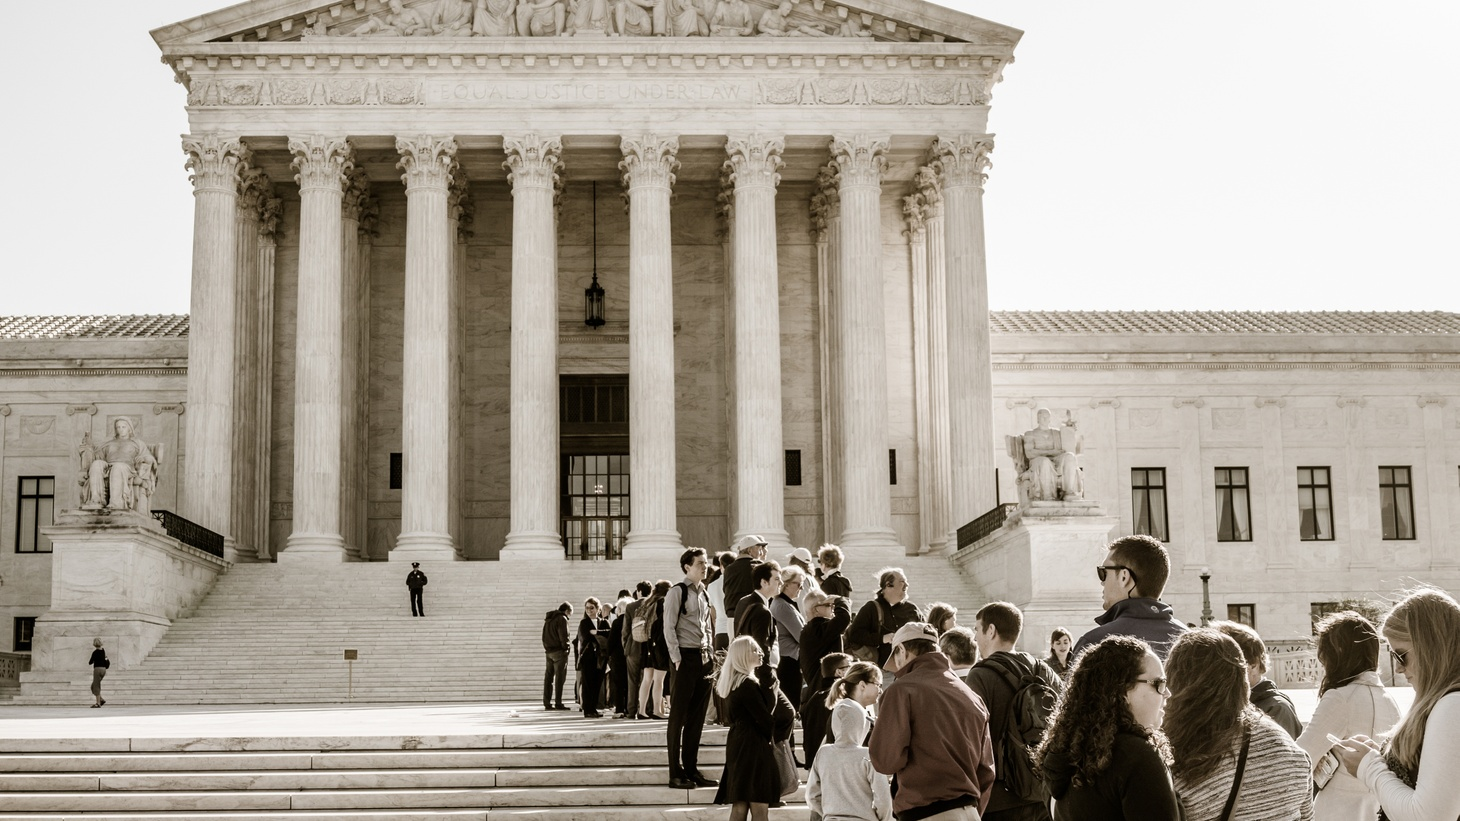 The US Supreme Court began its latest session with a thunderous silence: not even explaining why it refused to consider same-sex marriage. The court may be off to a quiet start, but it's famously divided, and legal thinkers aren't ruling out the prospect of big noise before the term is all over.